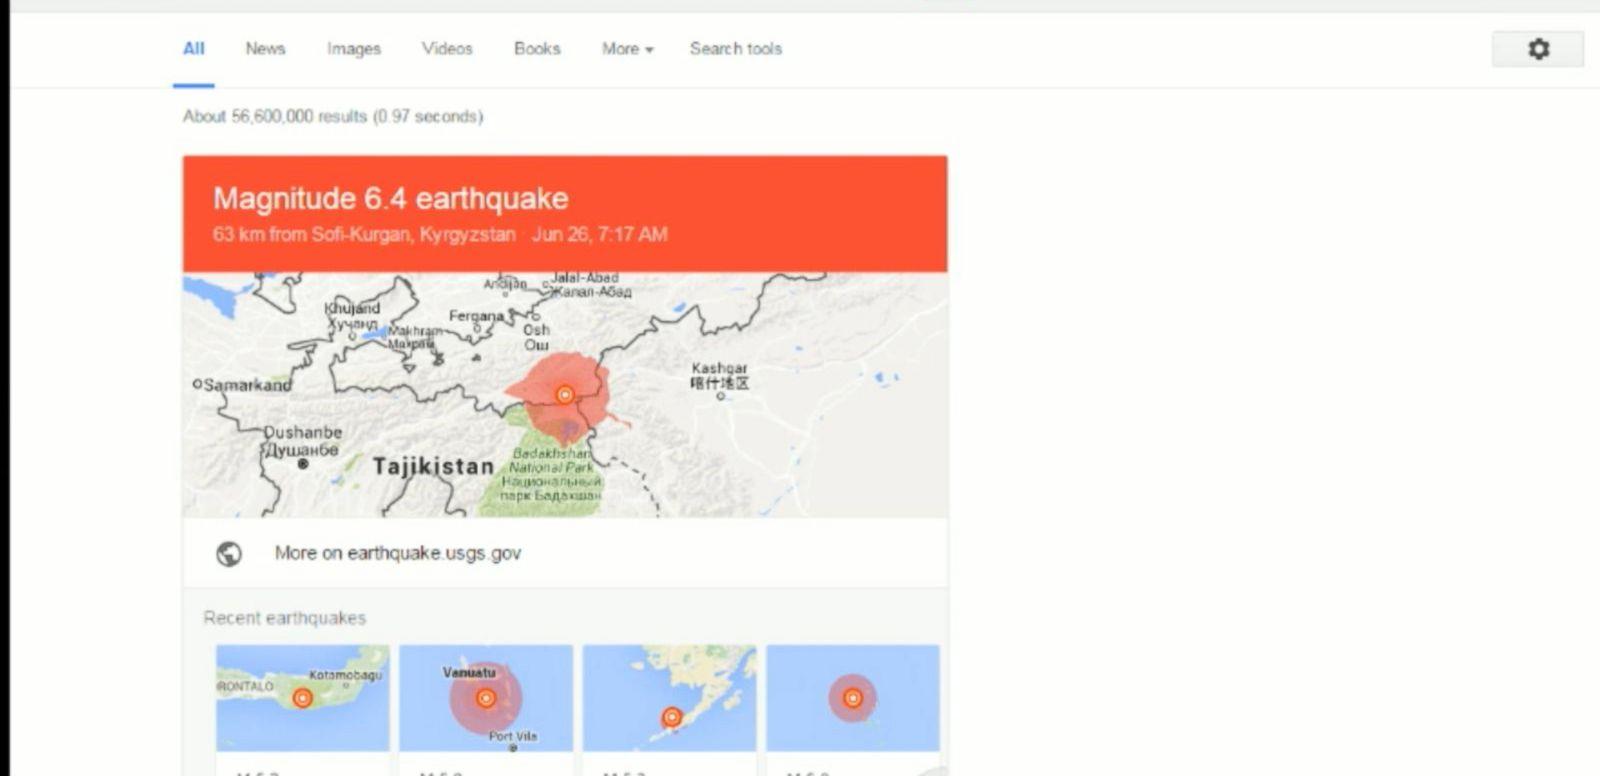 Google Earthquake Alerts